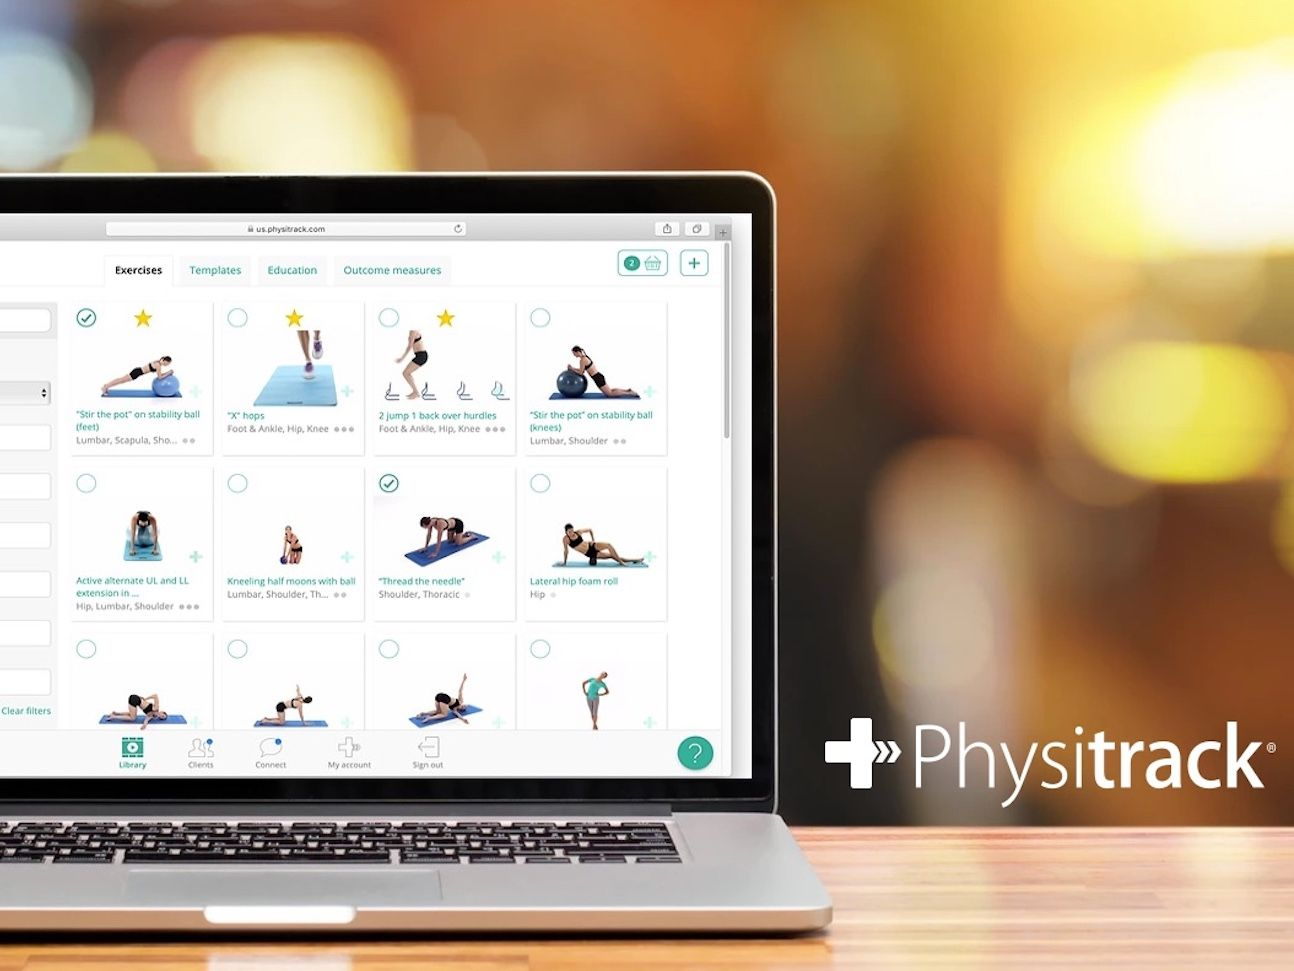 Exercise plans and patient video calling